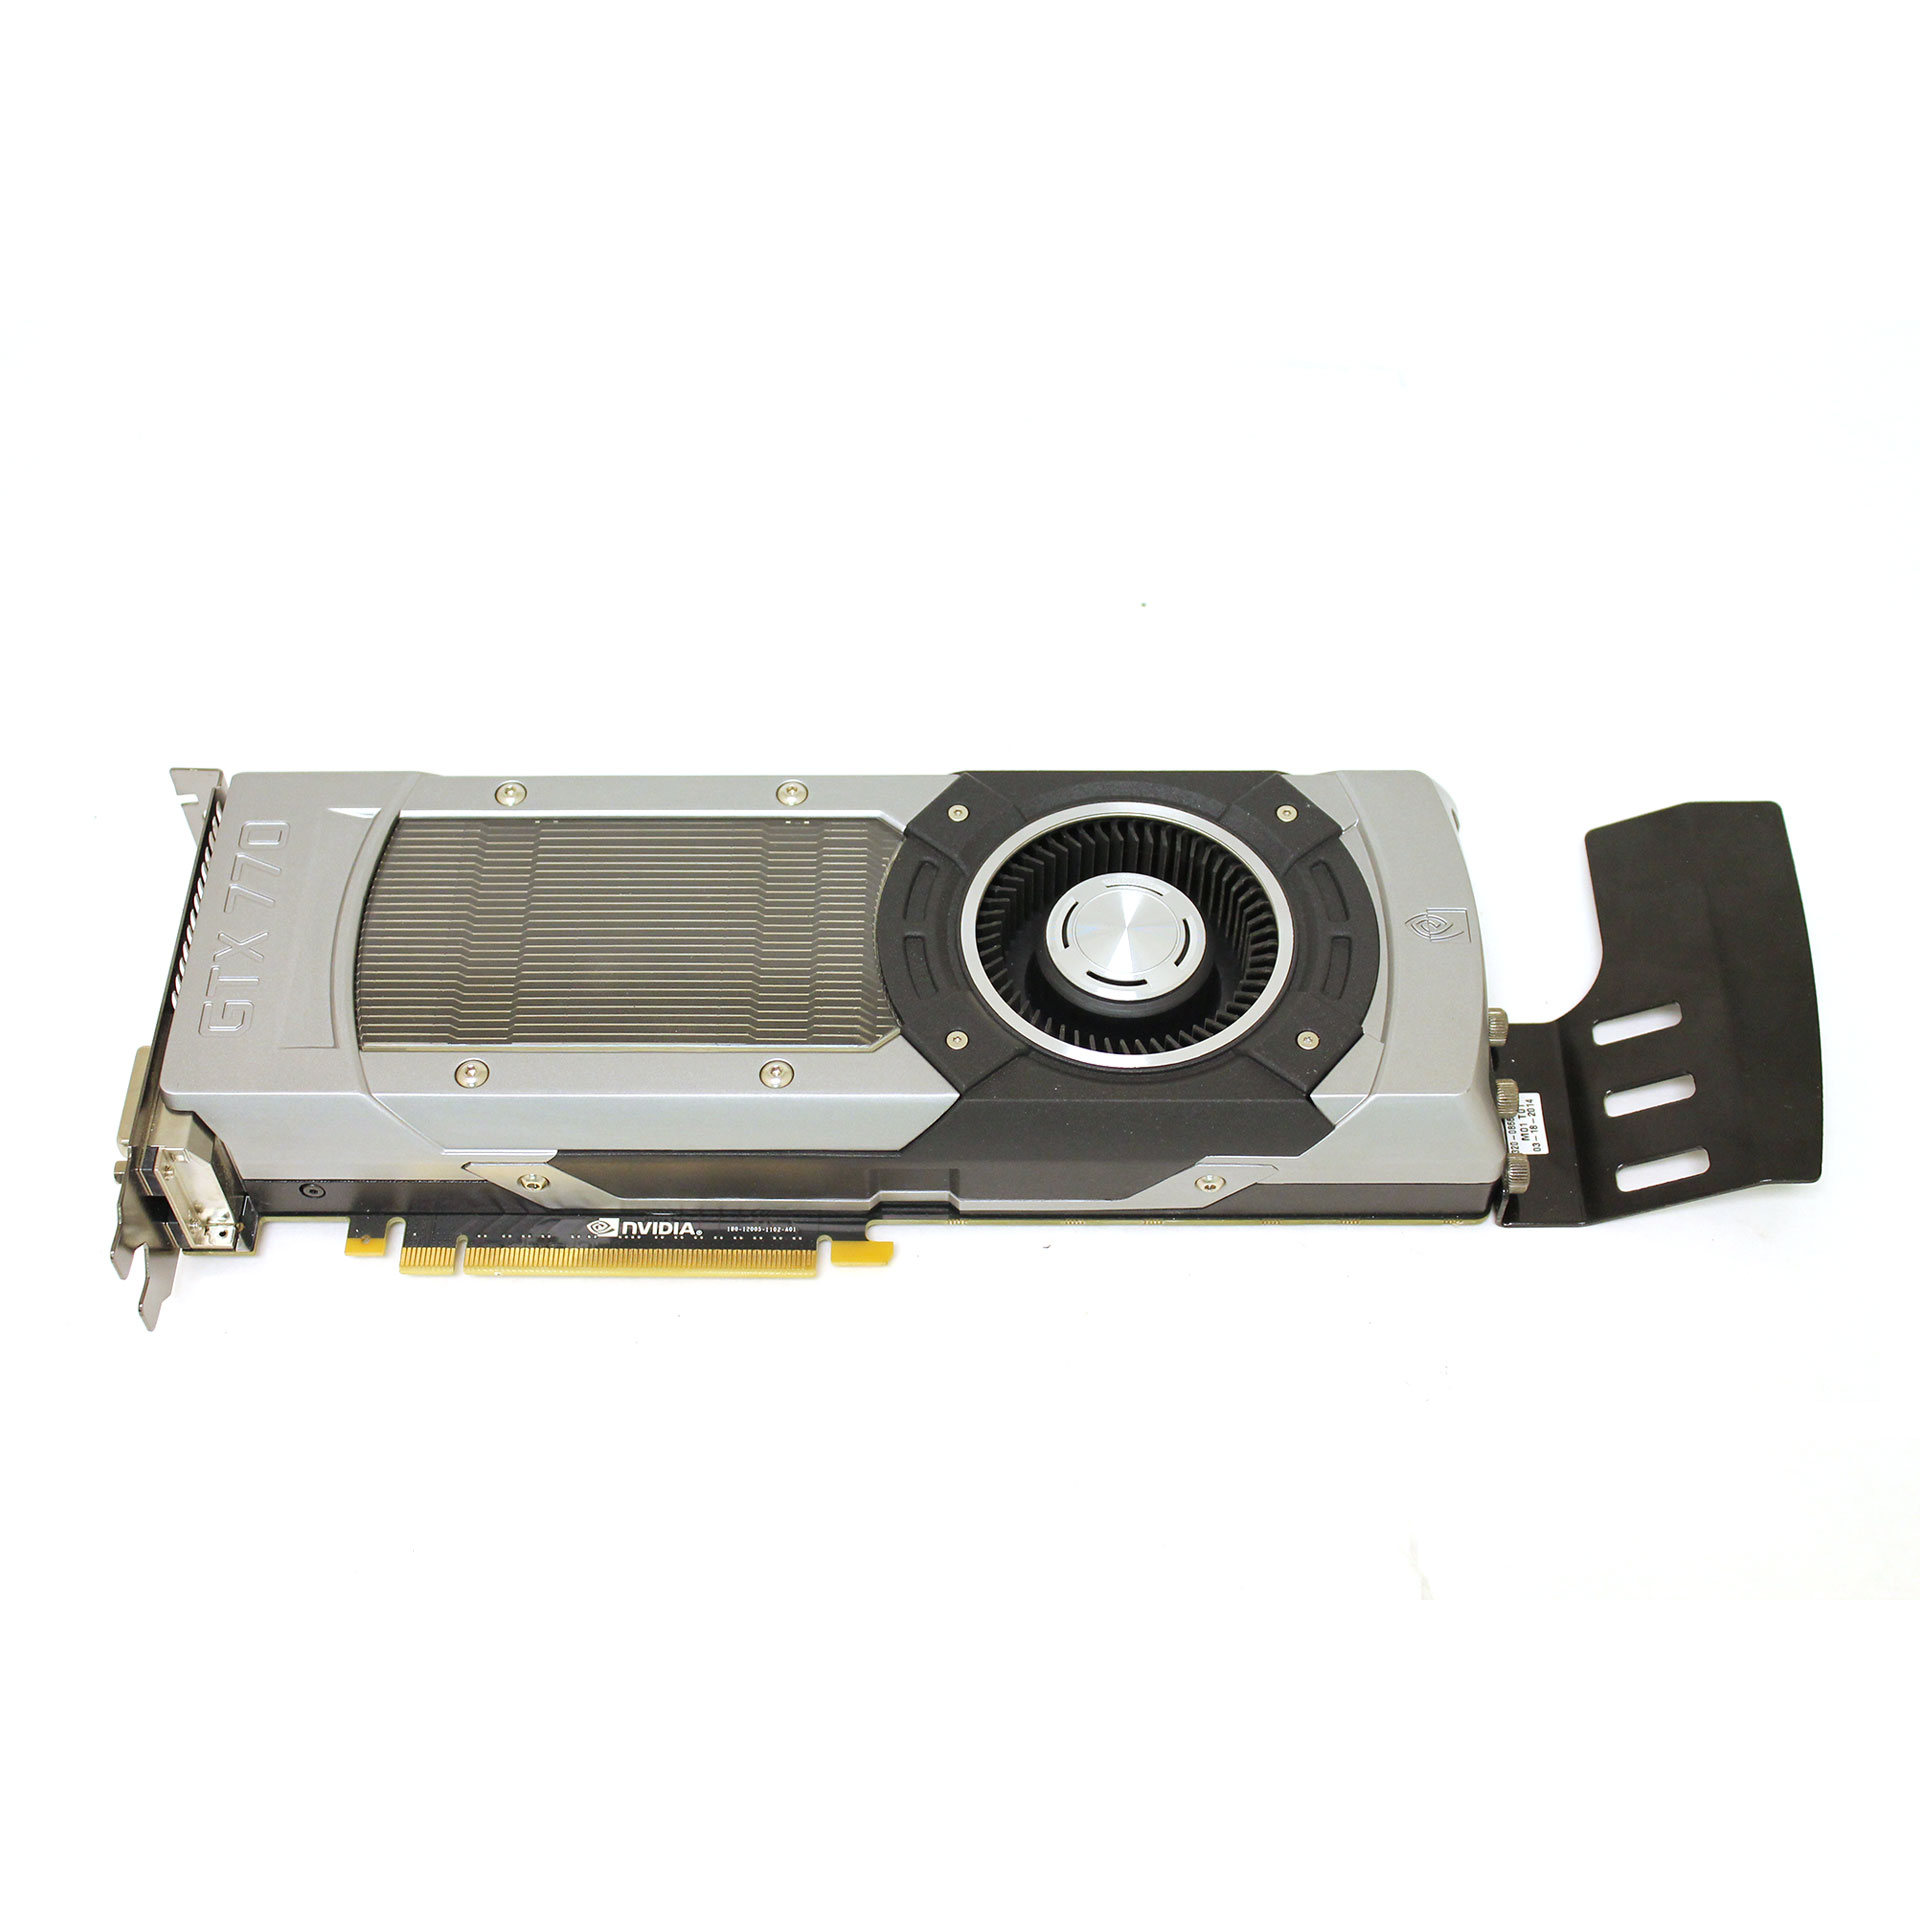 DELL/NVIDIA GEFORCE GTX 770 GPU GRAPHICS CARD 2GB GDDR5 PN 198W2